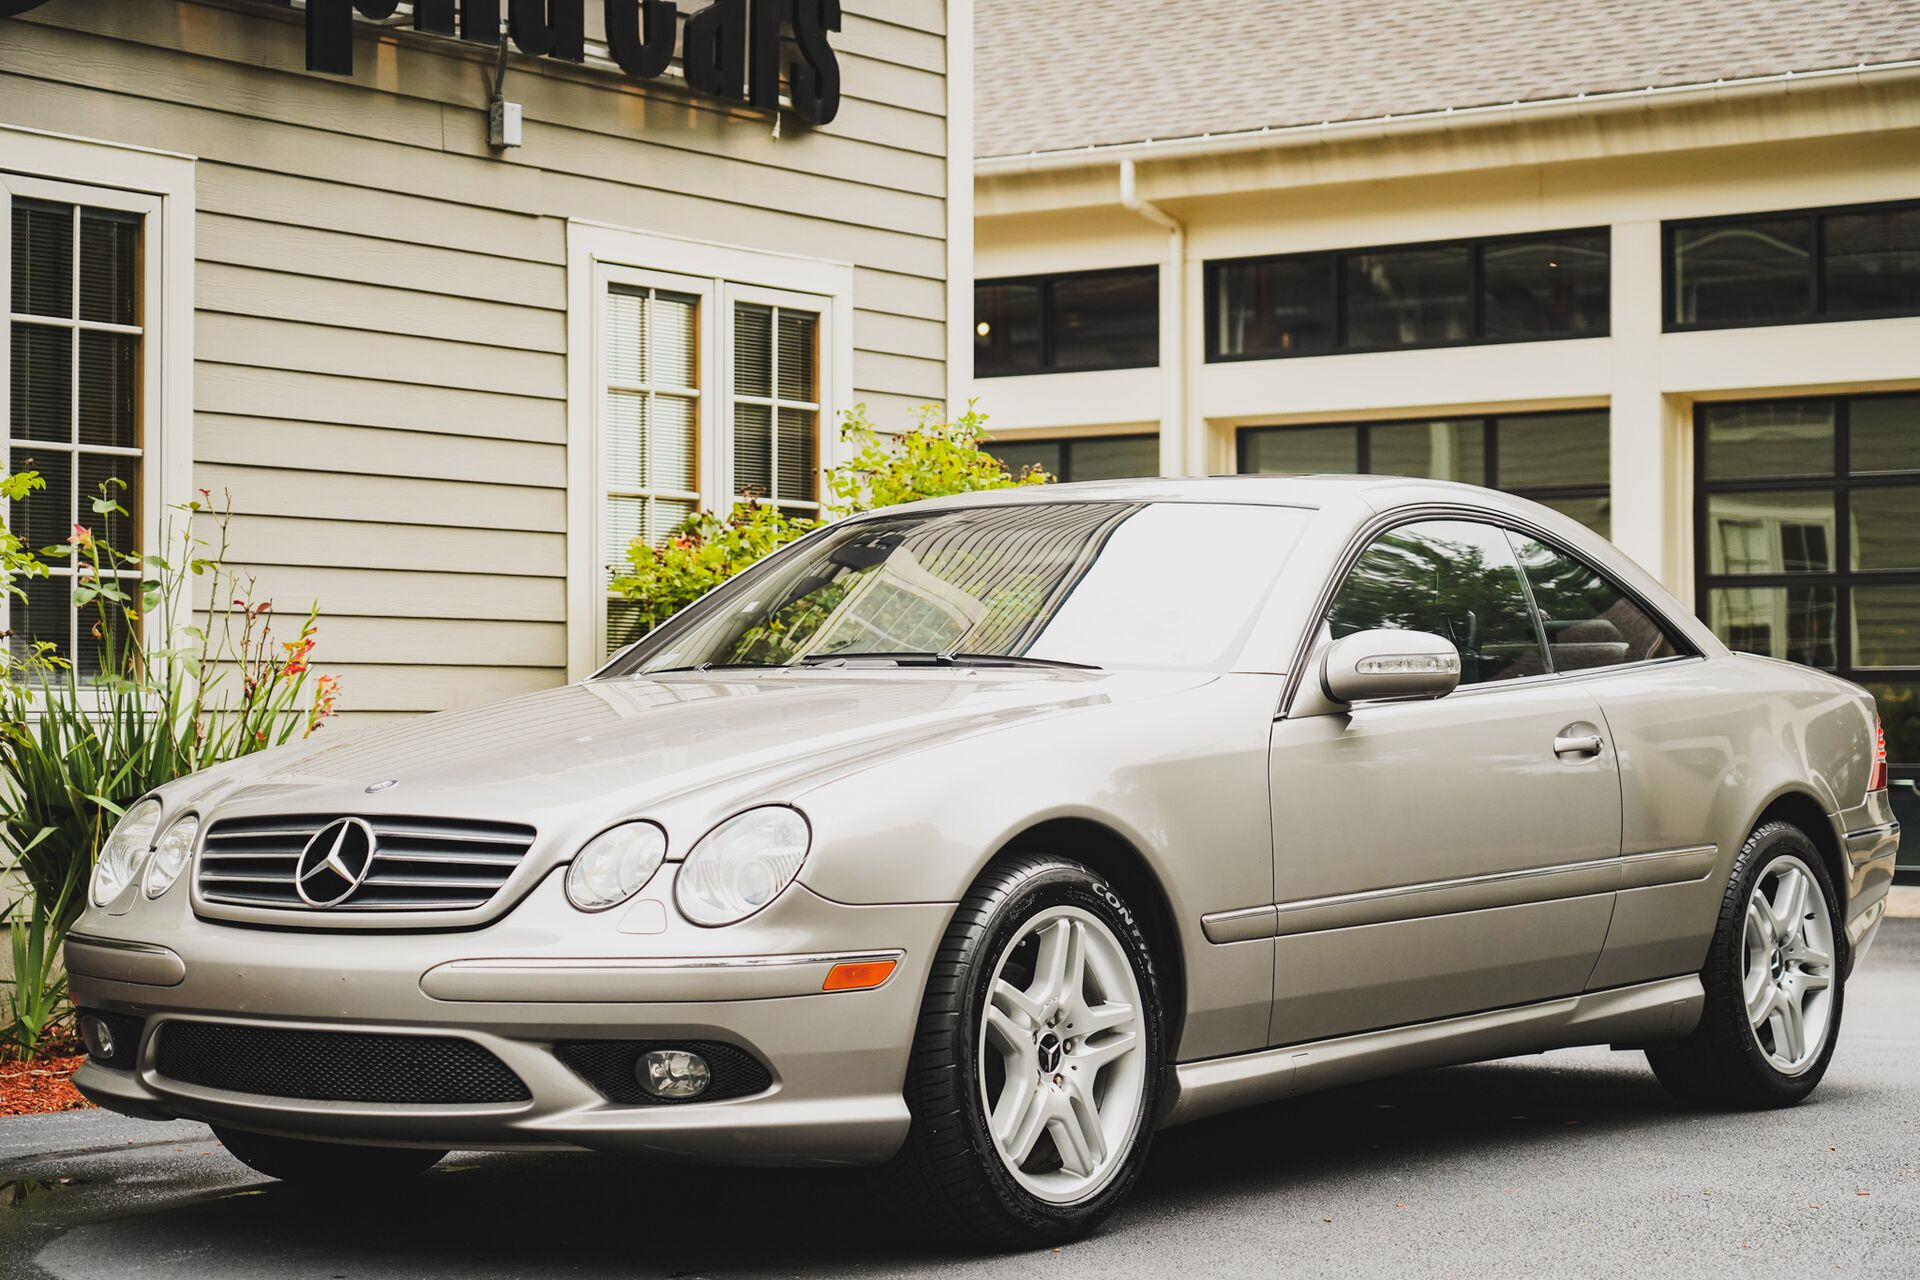 2006 Mercedes-Benz CL500 Coupe